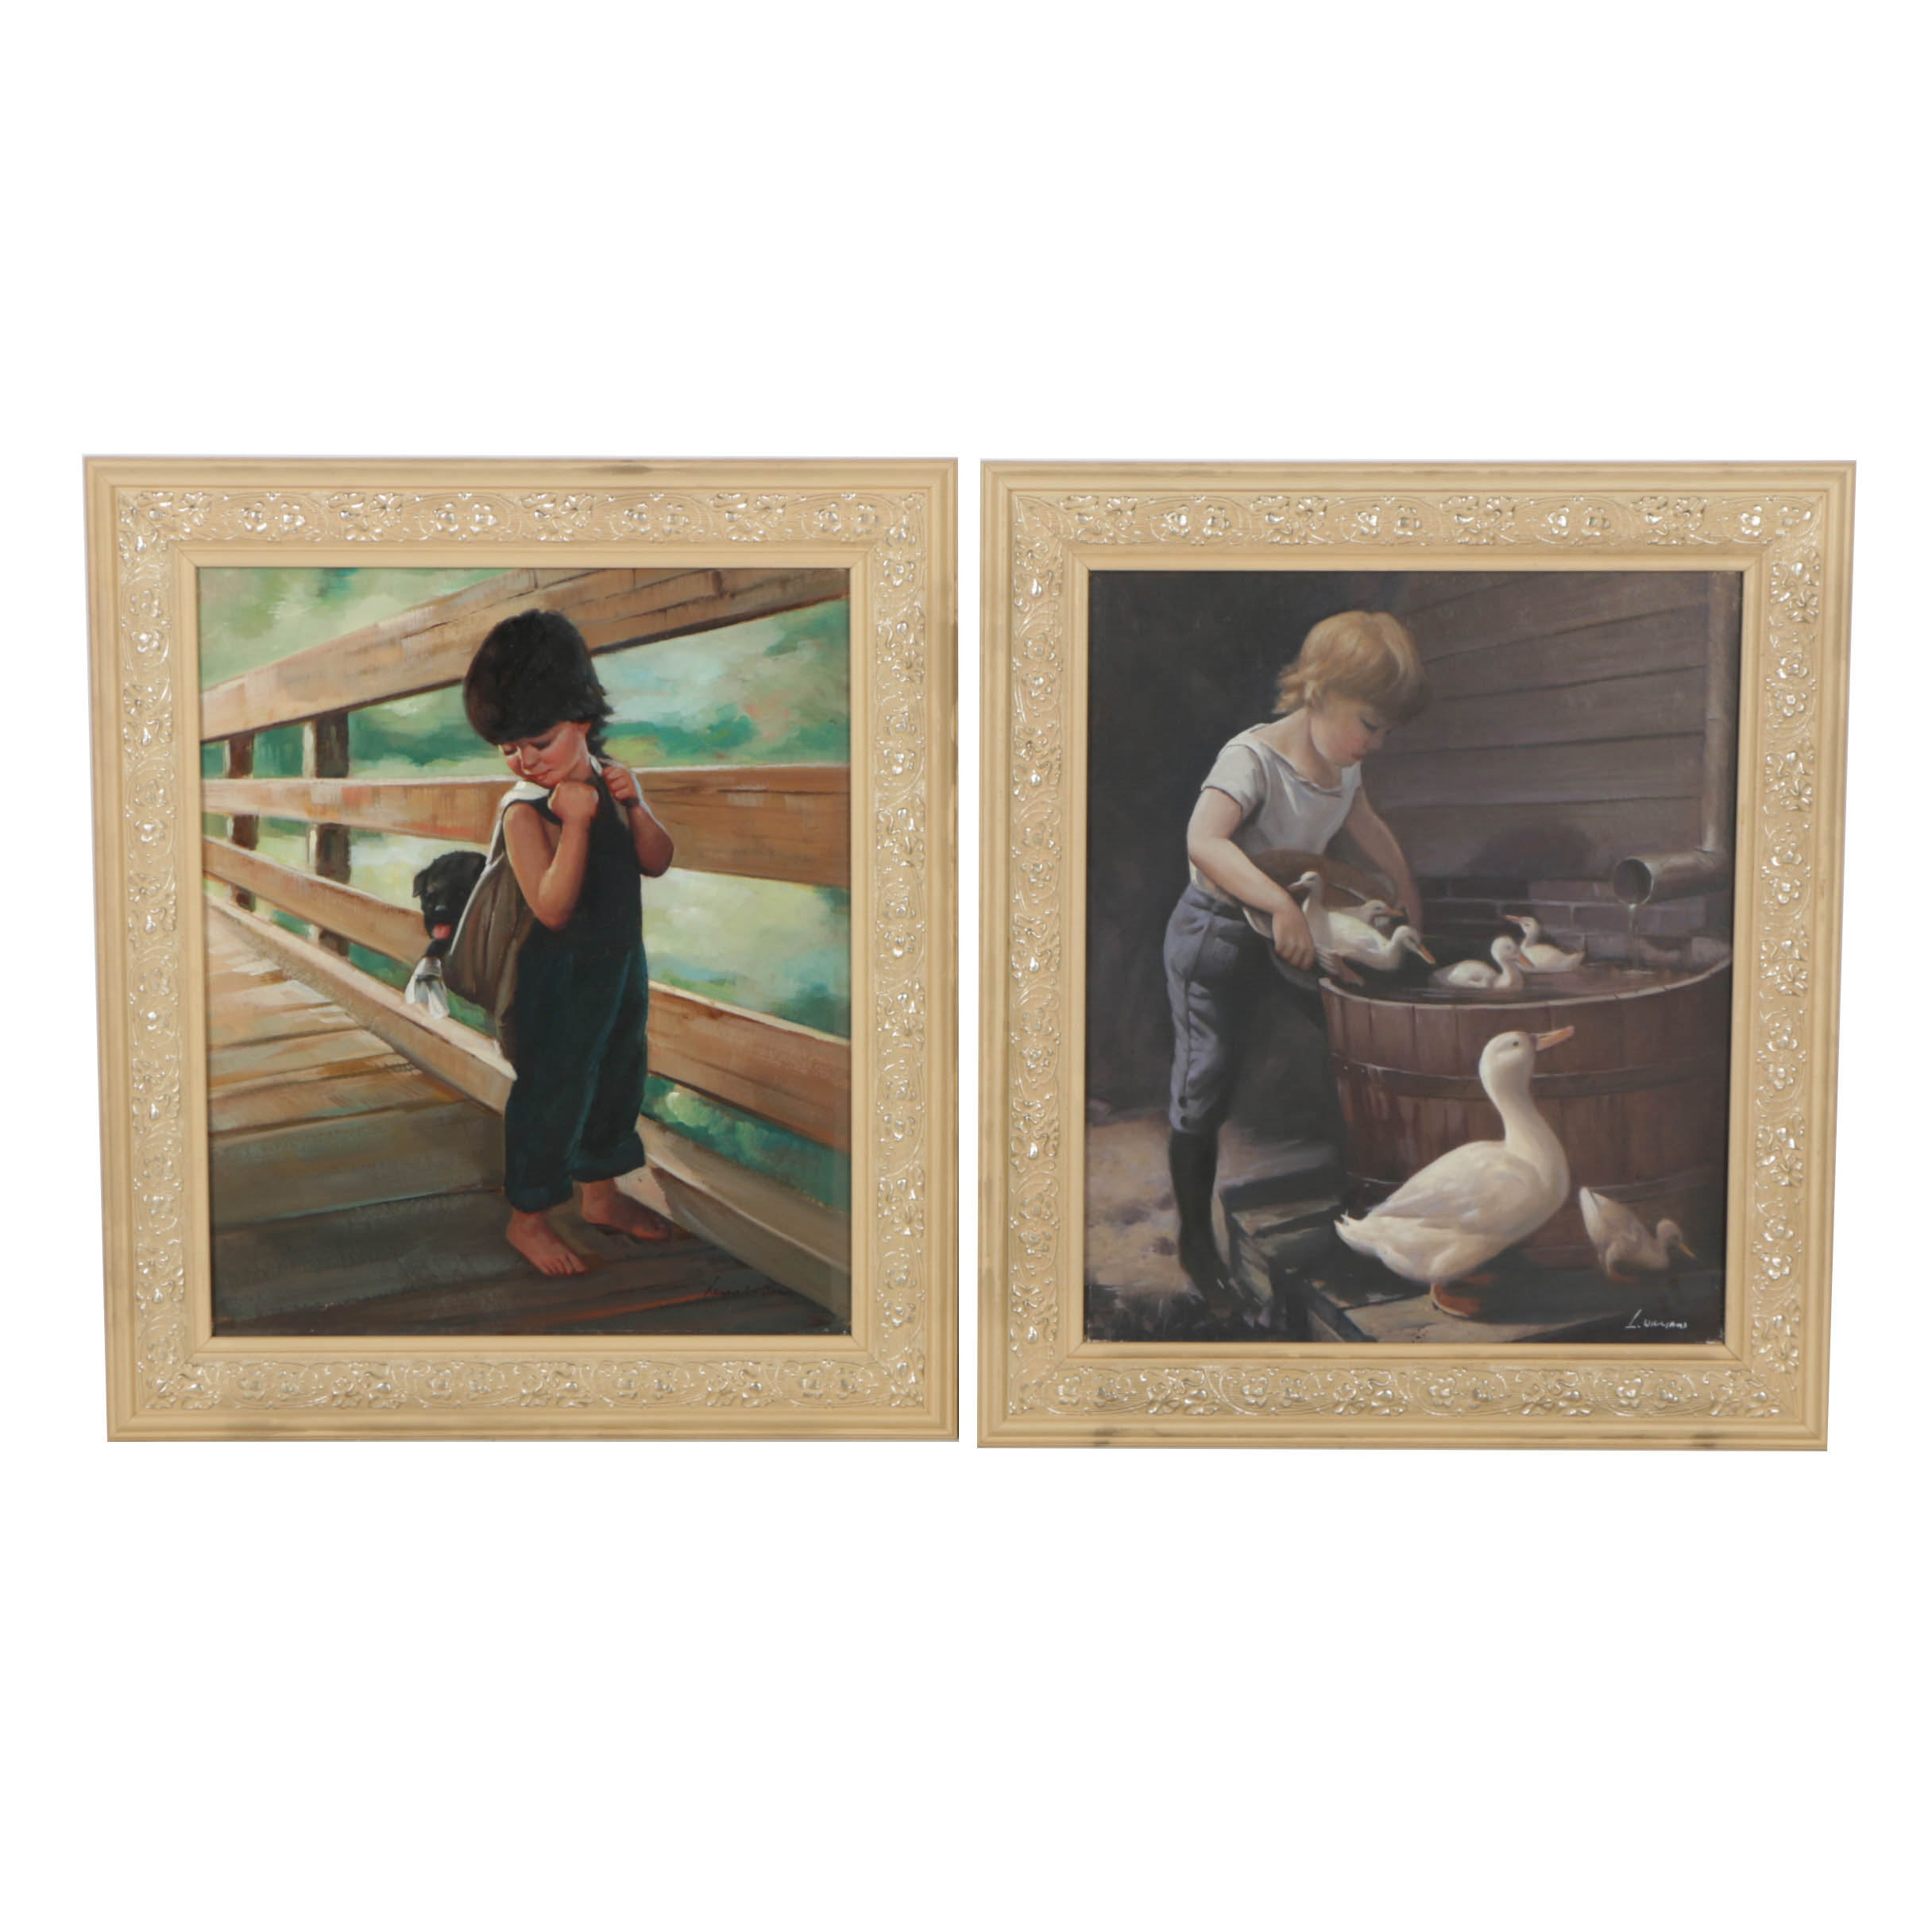 Pair of Lawrence Williams Embellished Giclees of Children